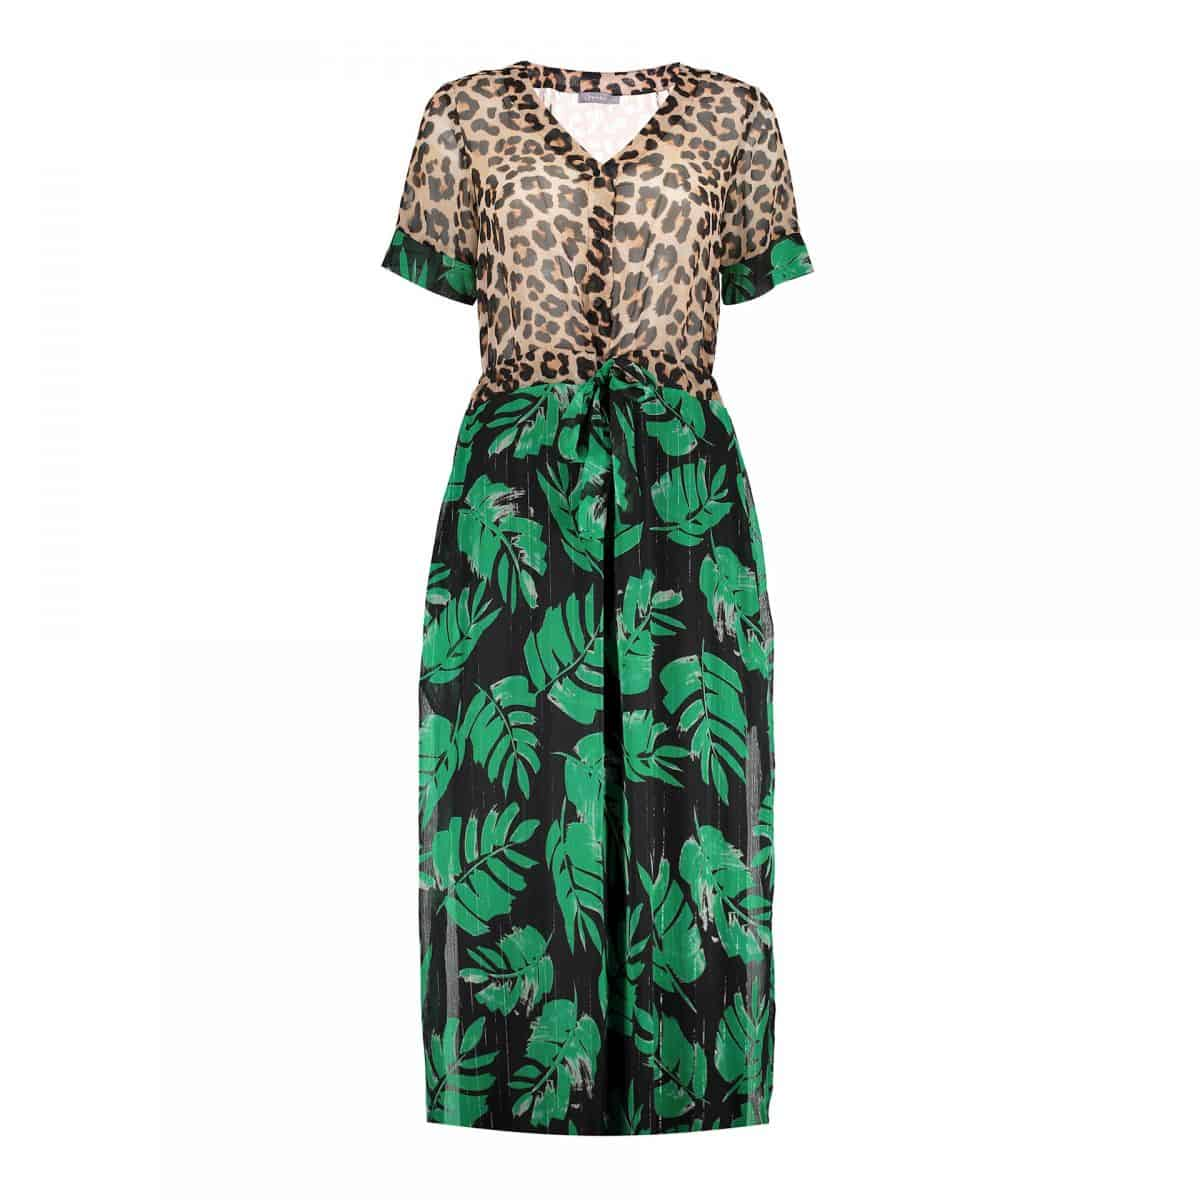 Geisha Dress Combi Leopard & Leaves